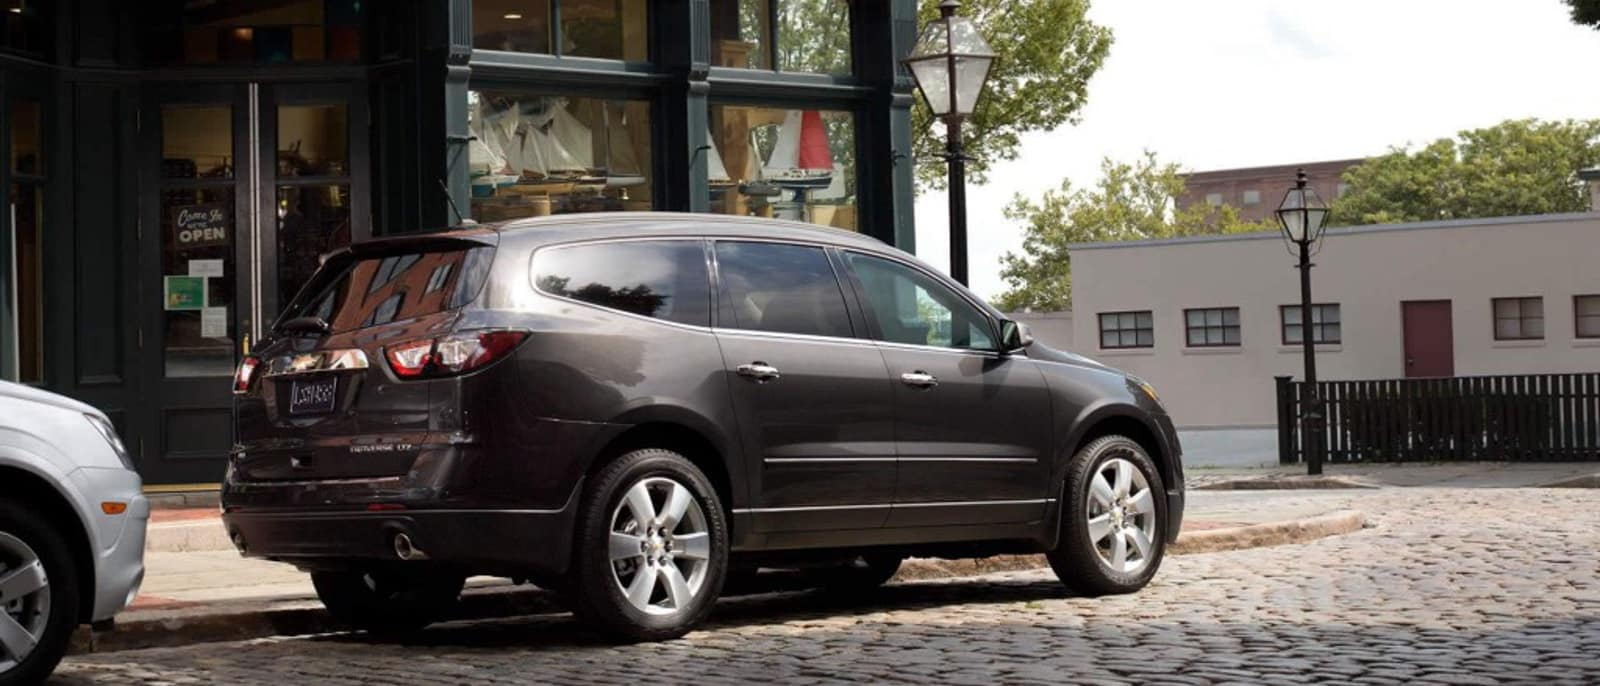 2015 Chevy Traverse side view